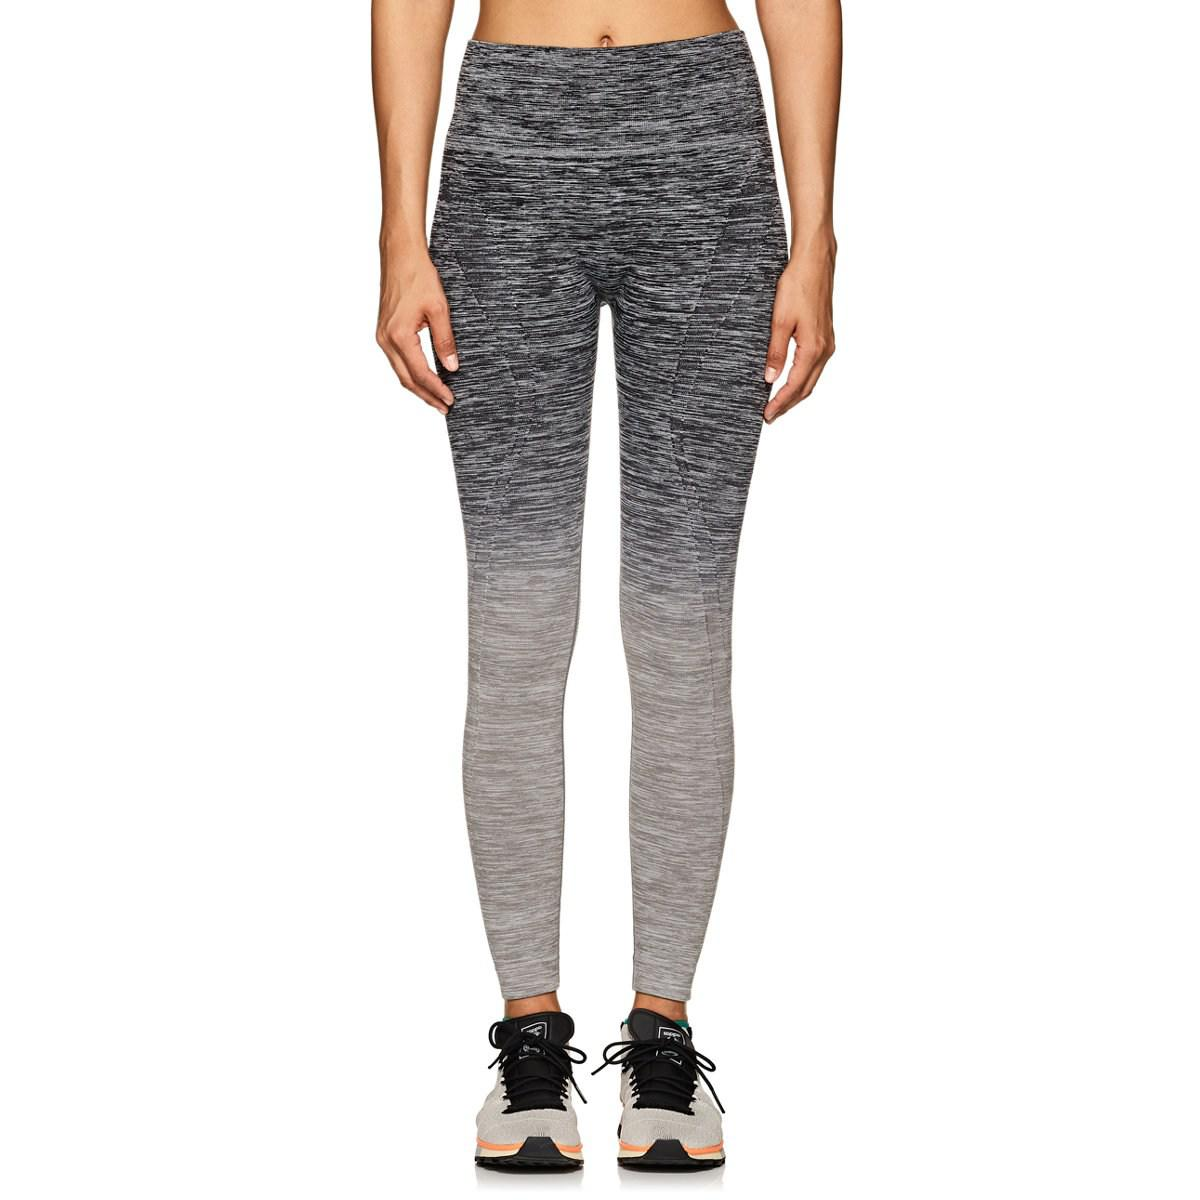 Womens Fade Gradient Tech-Jersey Leggings Electric Yoga 53pvow7